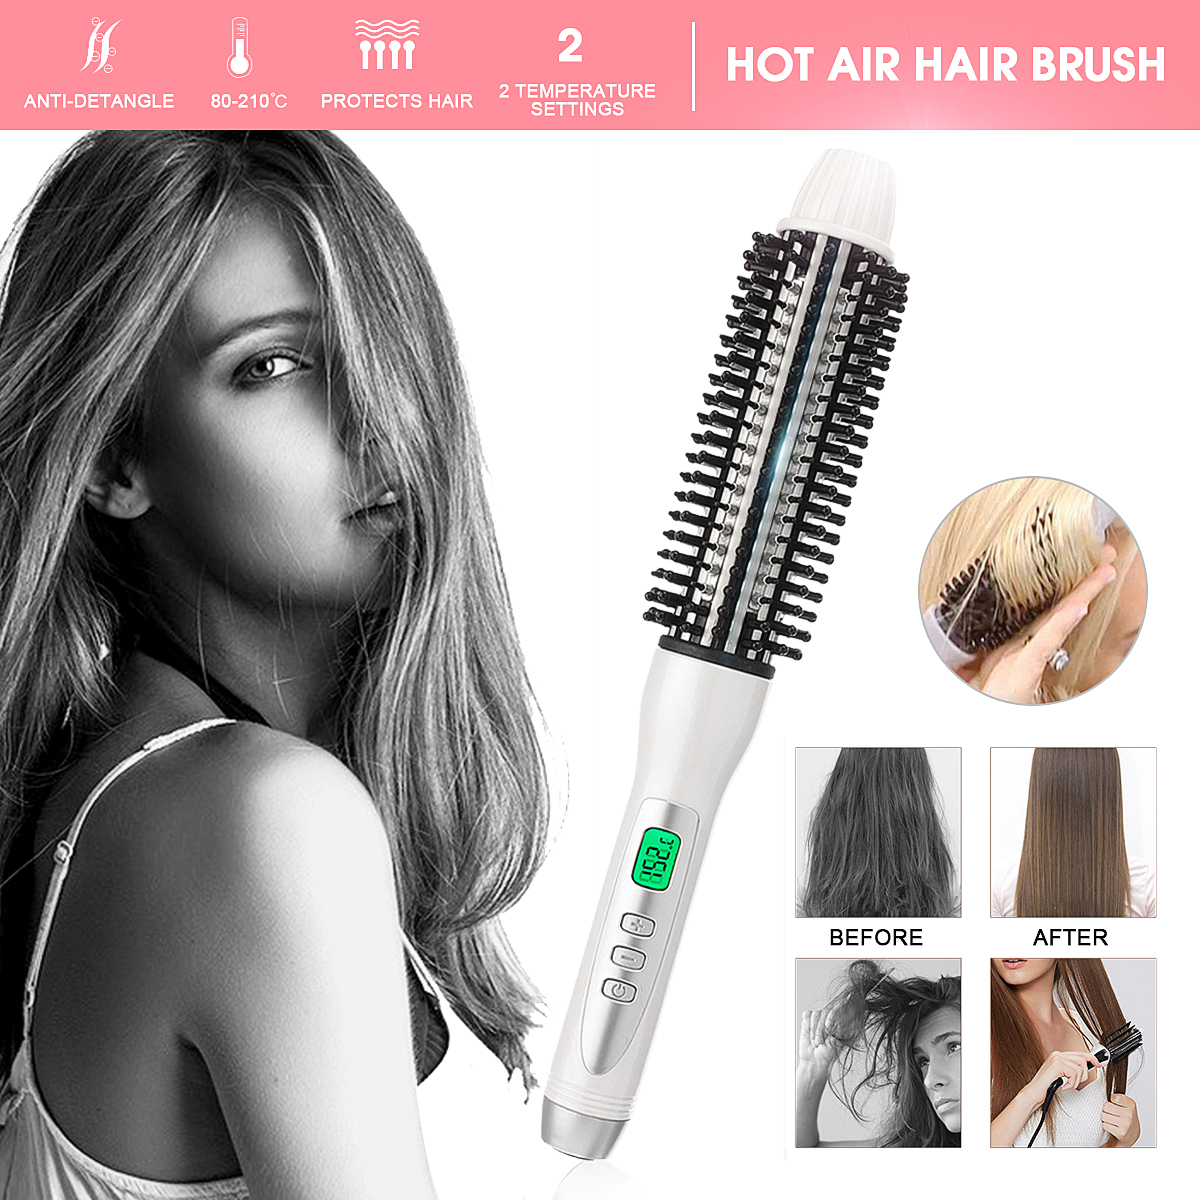 LCD Display Hair Curling Wand Curler Iron Ceramic Anion Hair Curler Deep Hot Air Brush Heating Roller Styler Hair Care Tools hot sale hair curler lcd pro salon automatic hair curling curler ceramic roller wave titanium hair curler waves styler